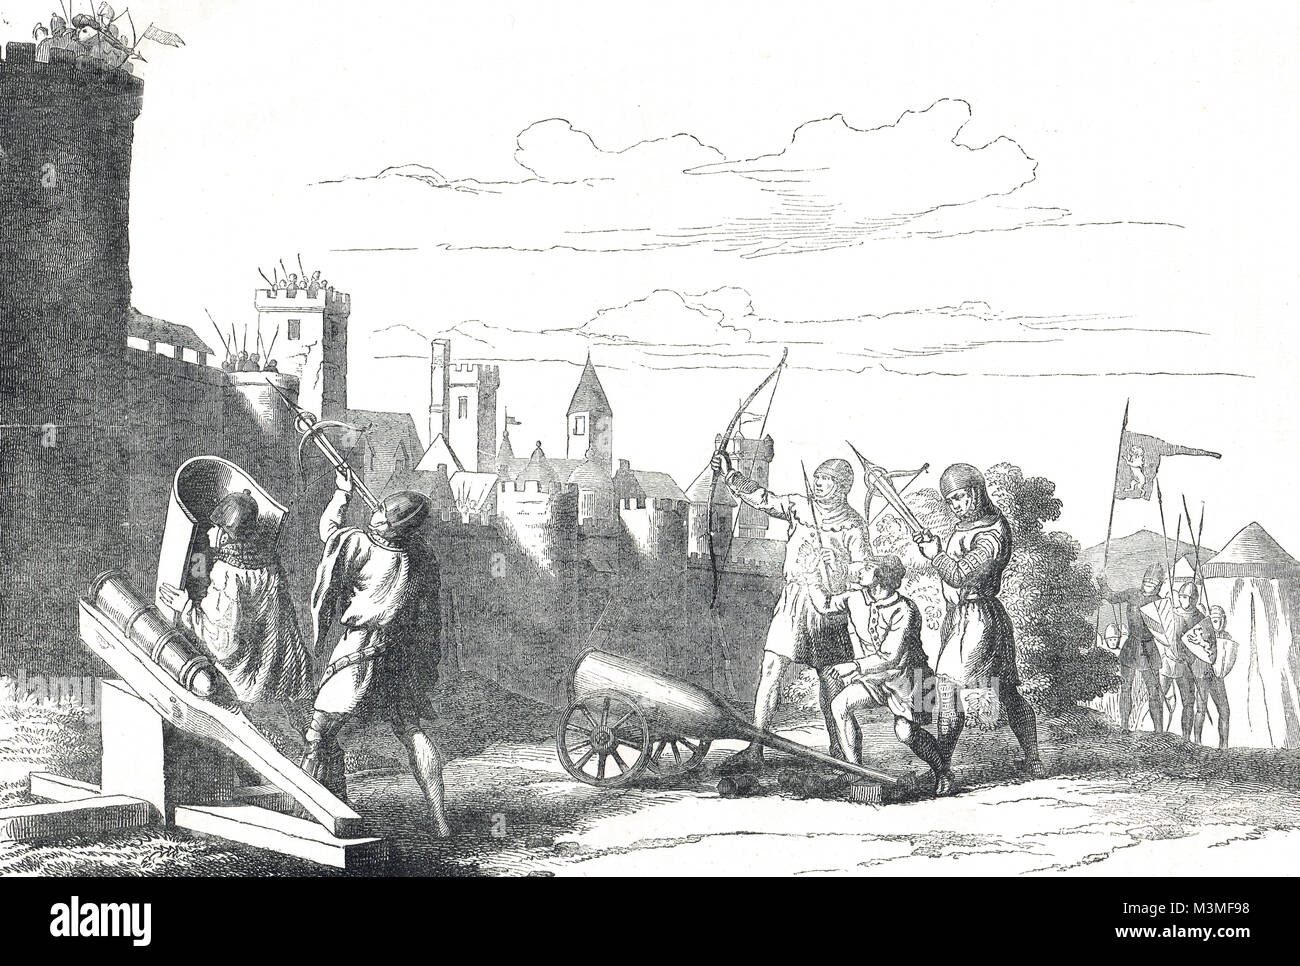 Siege of a town in the 14th century - Stock Image